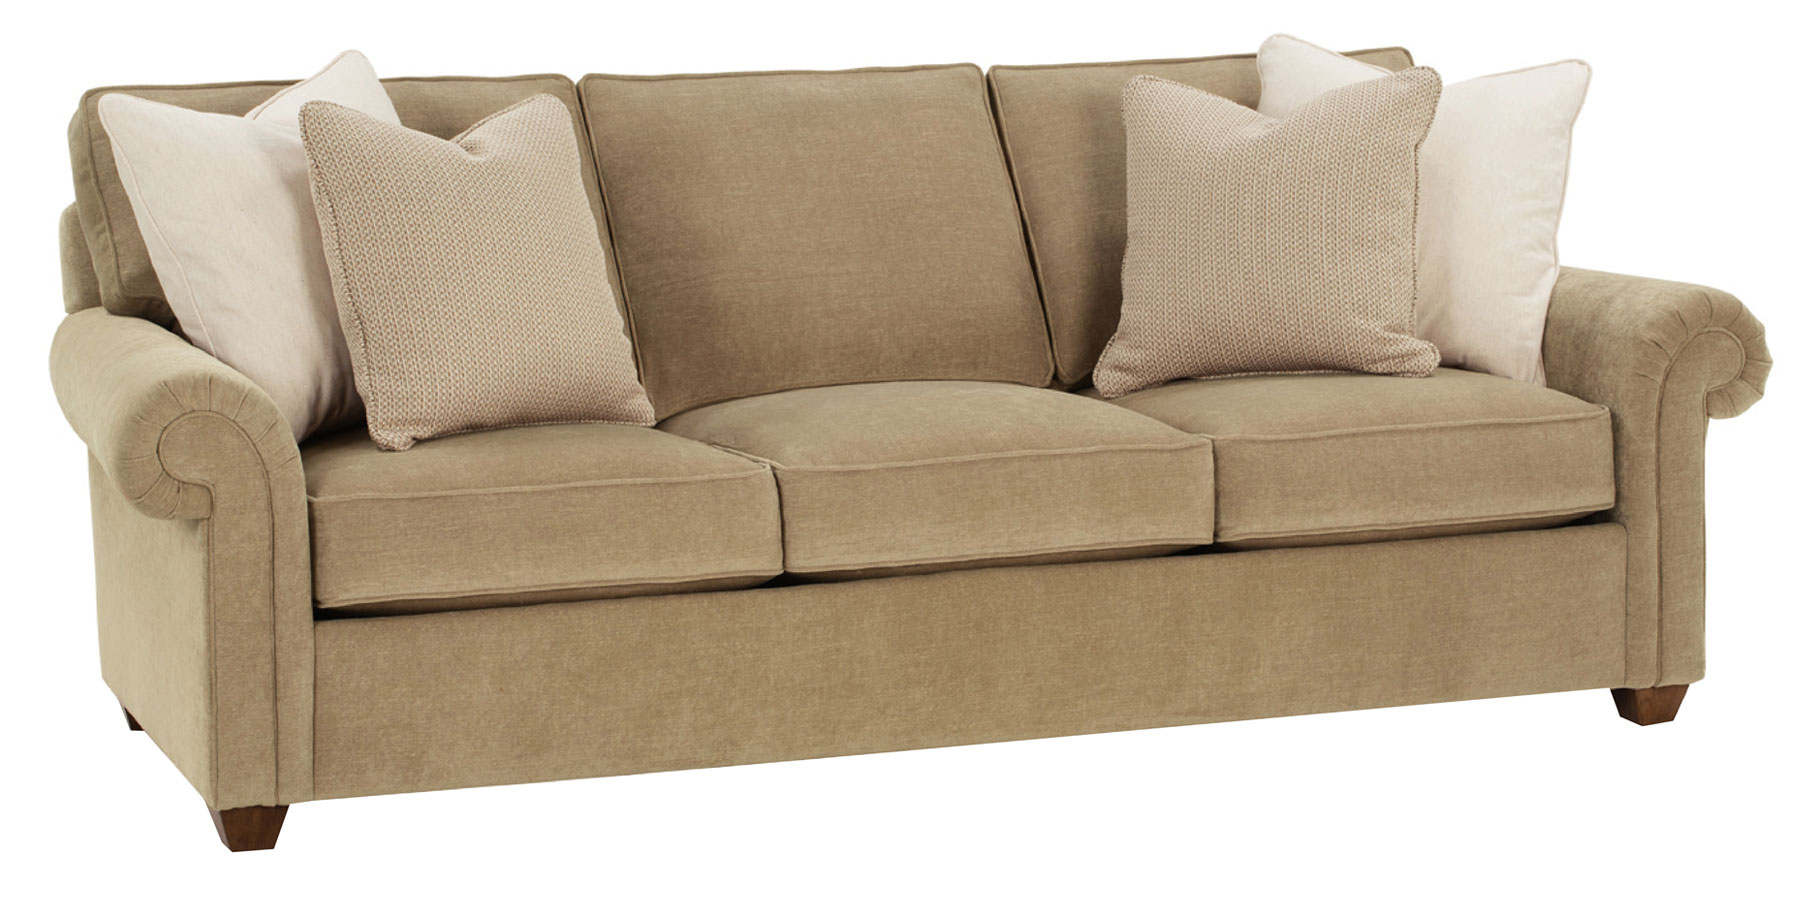 Upholstered Fabric Pillow Back Sofa Collection W Rolled Arms